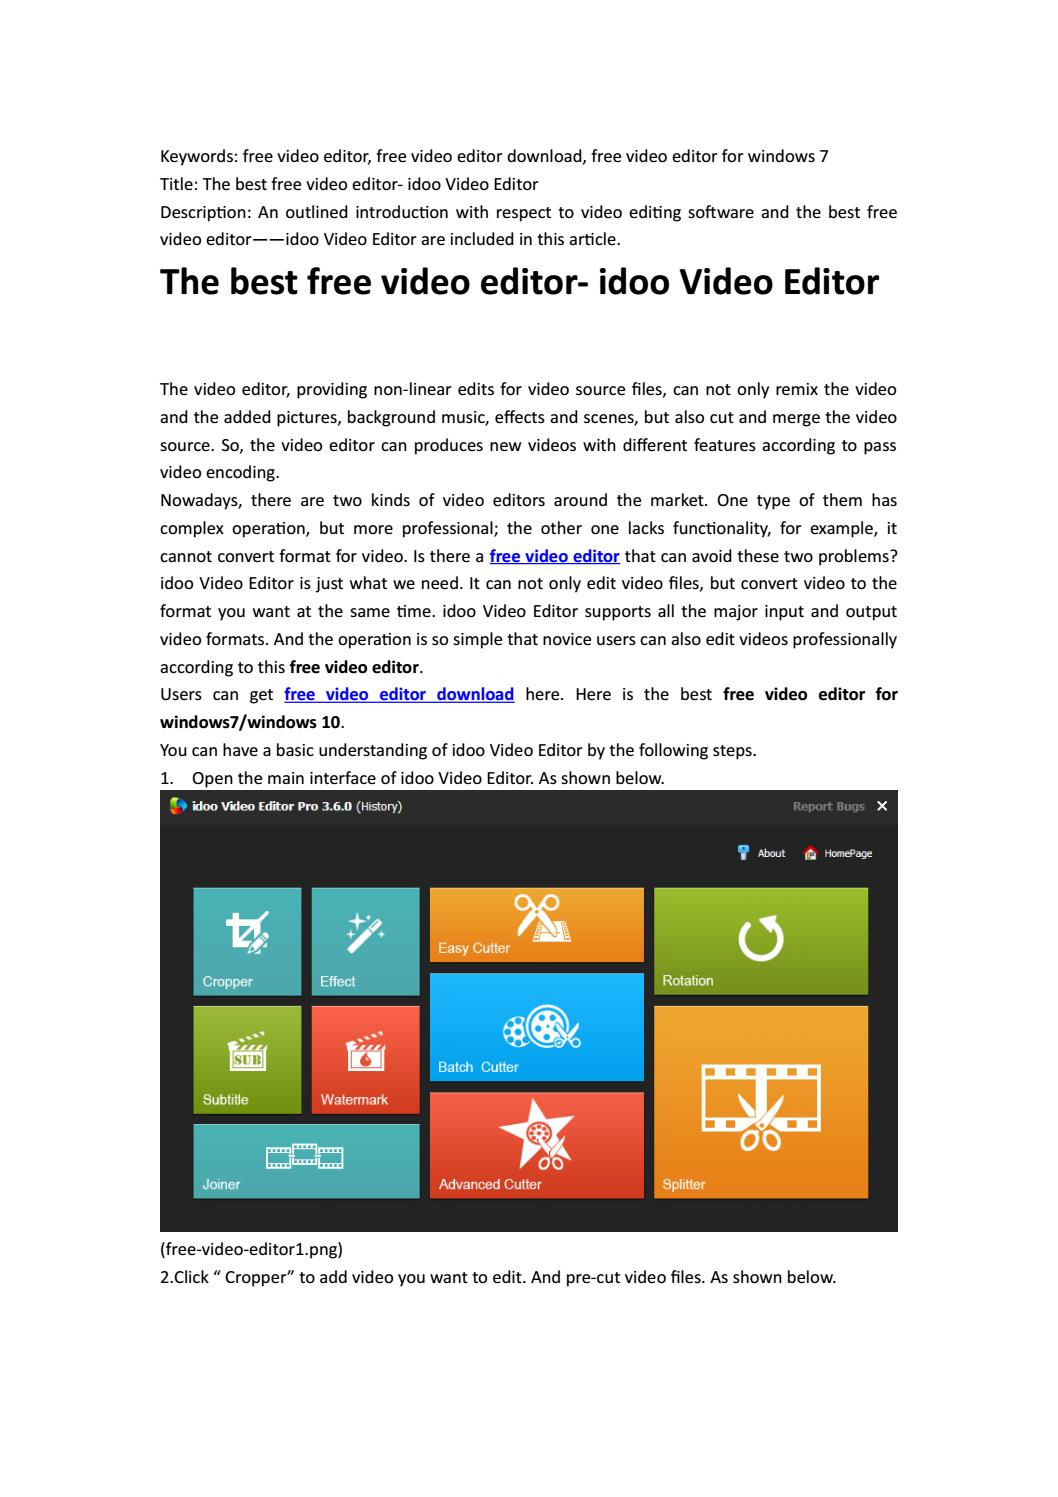 The best free video editor- idoo Video Editor by croolyp11